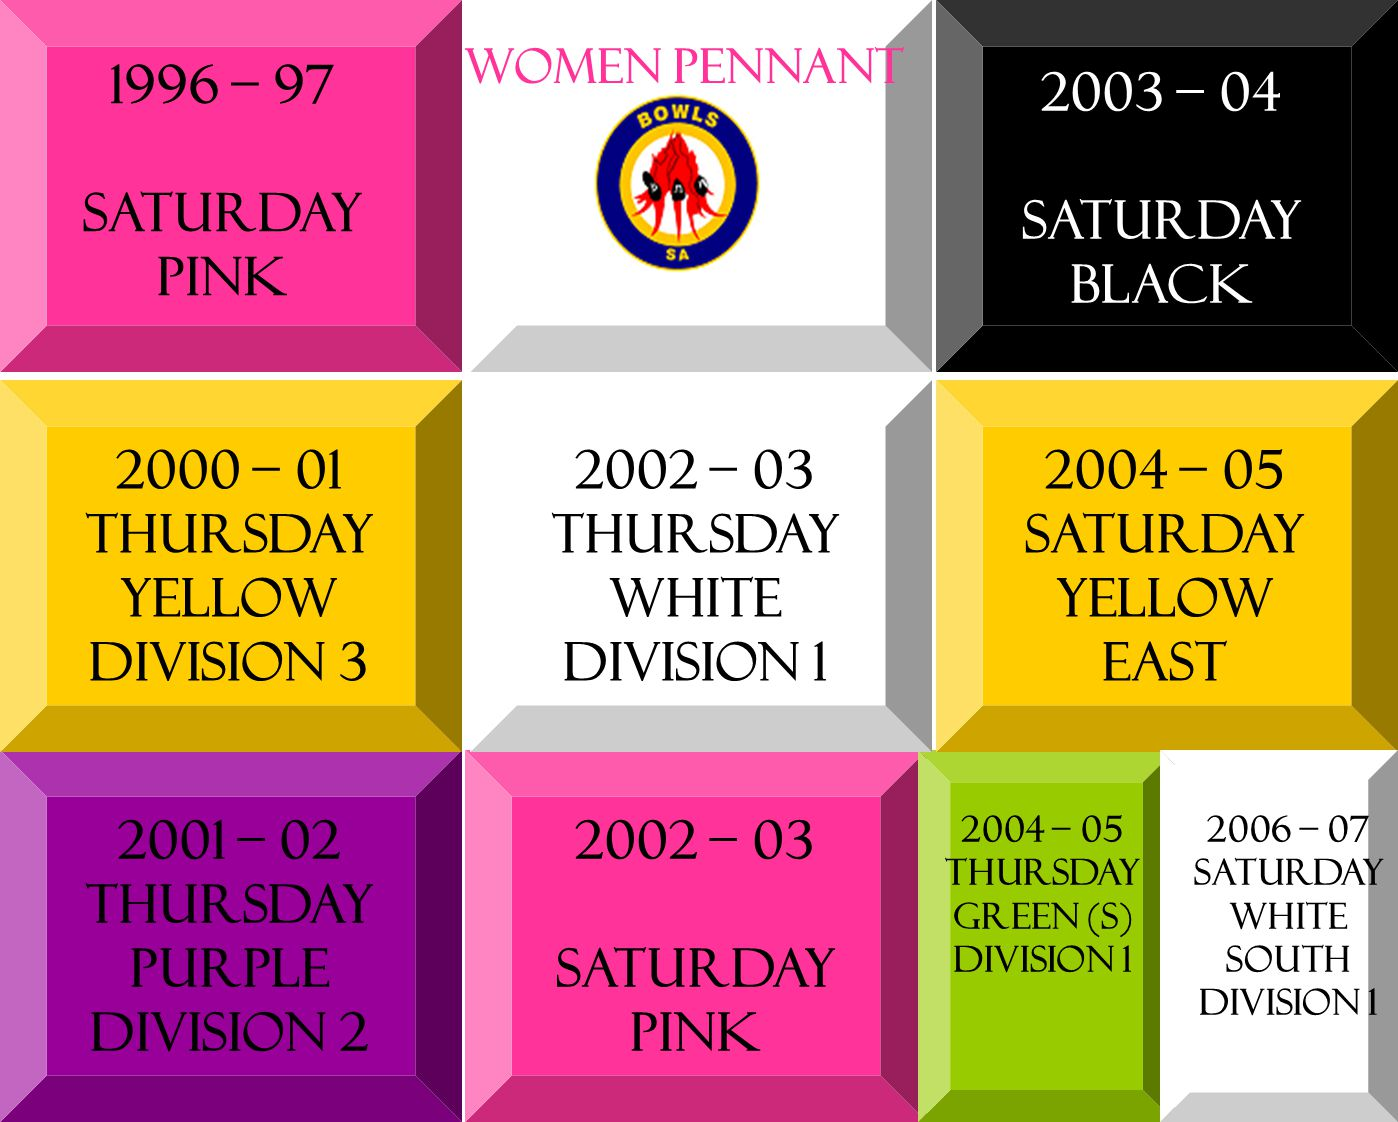 1996 – 97 Saturday pink 2000 – 01 Thursday yellow DIVISION 3 2001 – 02 Thursday purple DIVISION 2 2002 – 03 Thursday white DIVISION 1 2002 – 03 Saturday pink 2003 – 04 Saturday black 2004 – 05 Saturday yellow east 2004 – 05 Thursday Green (S) DIVISION 1 women pennant 2006 – 07 Saturday white south DIVISION 1